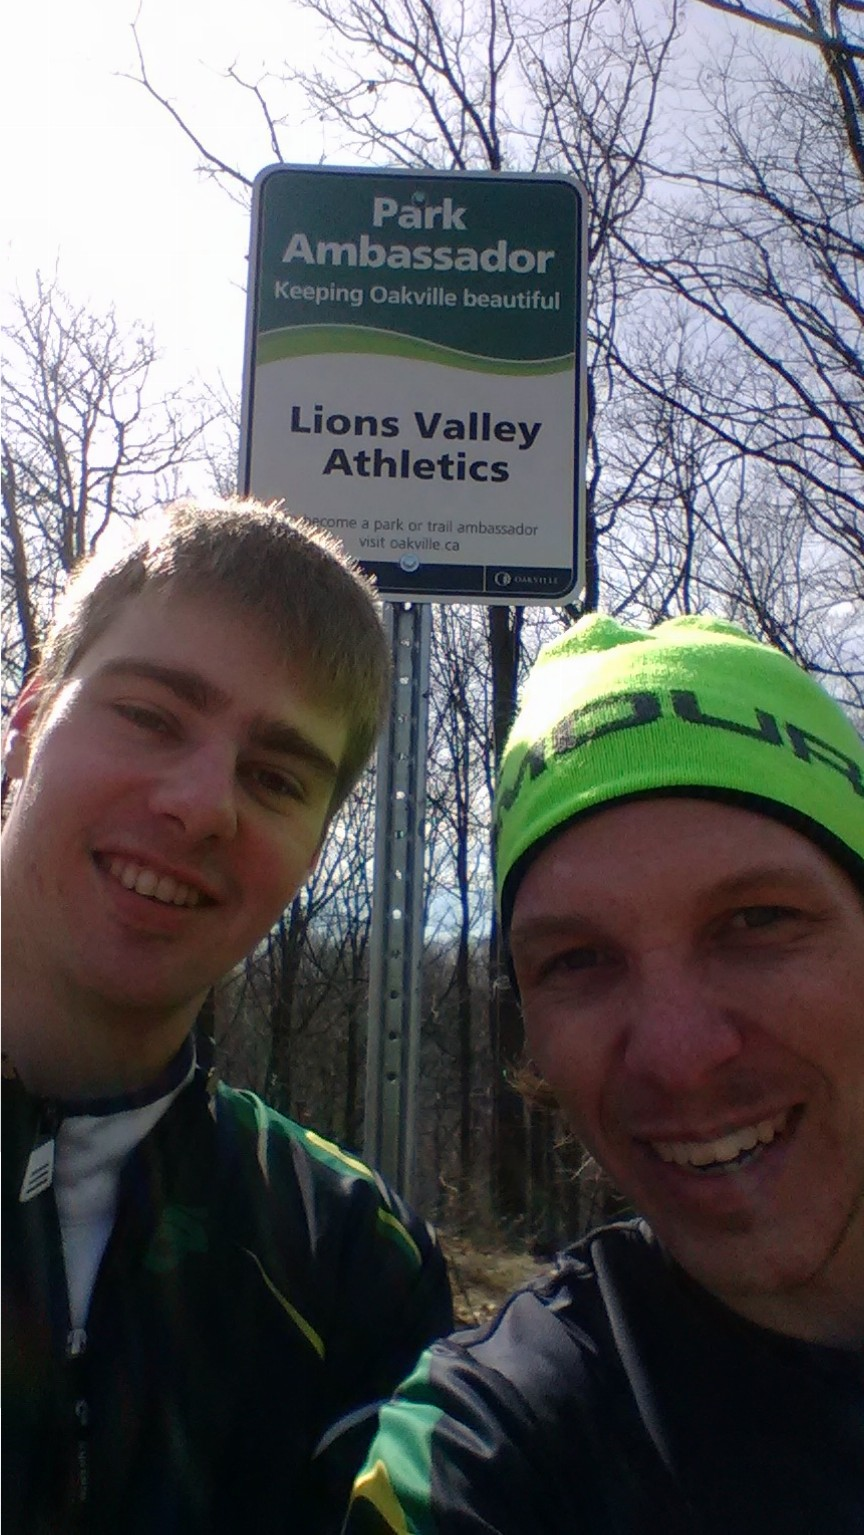 Sean and Kevin checking out one of our signs with a selfie! Its the start of a section of trail that is just over 1 mile long when you go out, around the loop and back. #MileRepeats.